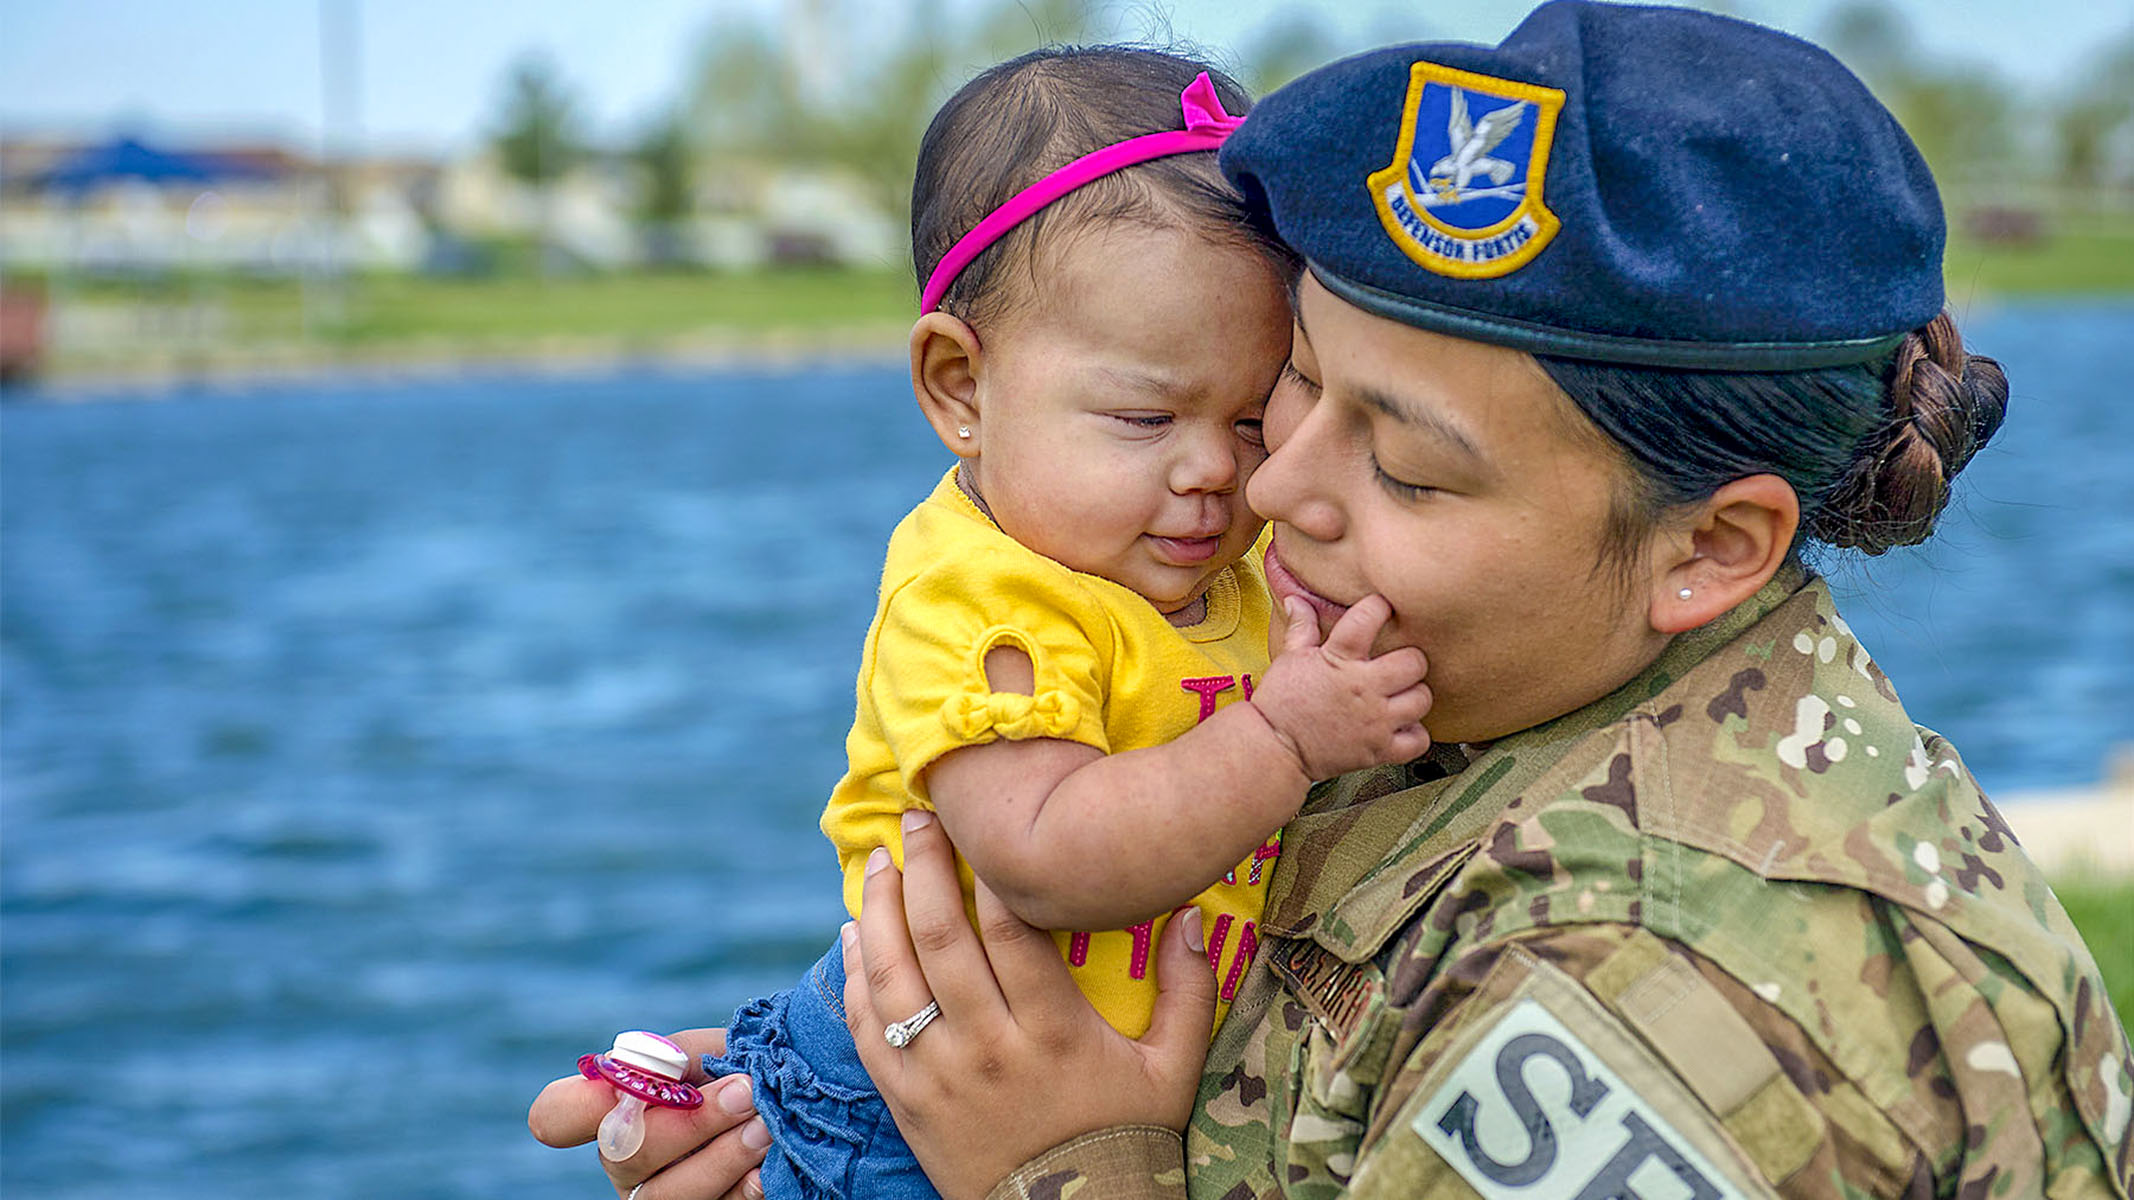 Air Force Senior Airman Ashley Dudley plays with her 8-month old daughter at Whiteman Air Force Base, Mo., May 4, 2018. Dudley is assigned to the 509th Security Forces Squadron. (A1C Taylor Phifer/Air Force)